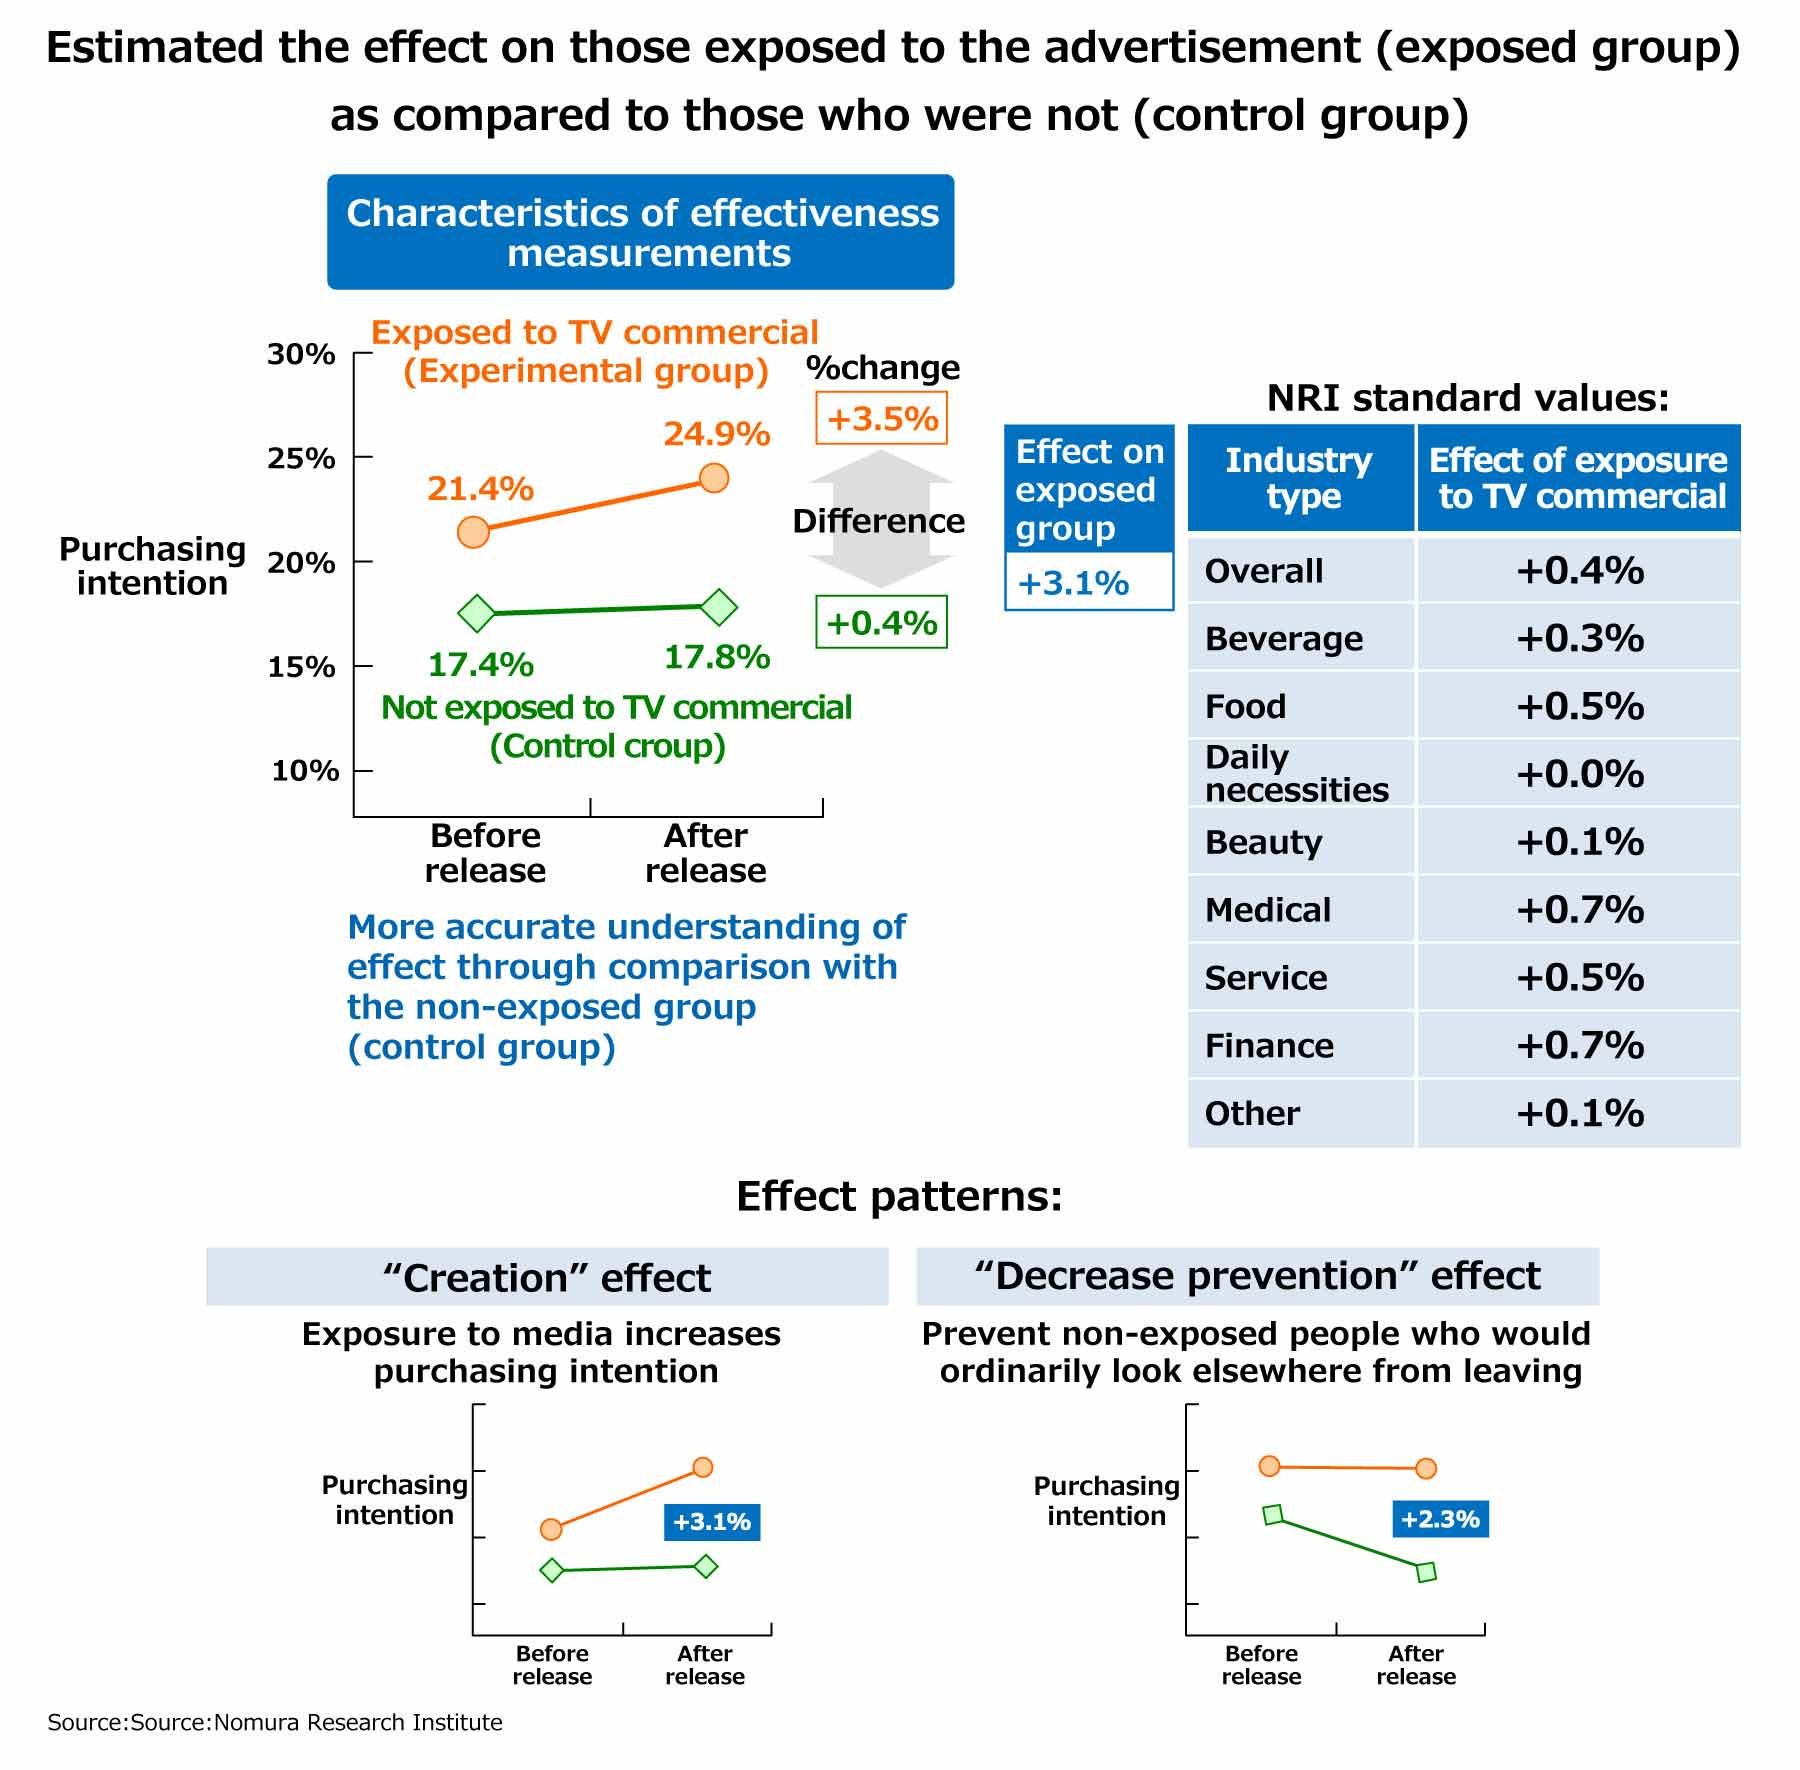 Estimated the effect on those exposed to the advertisement (exposed group) as compared to those who were not (control group)